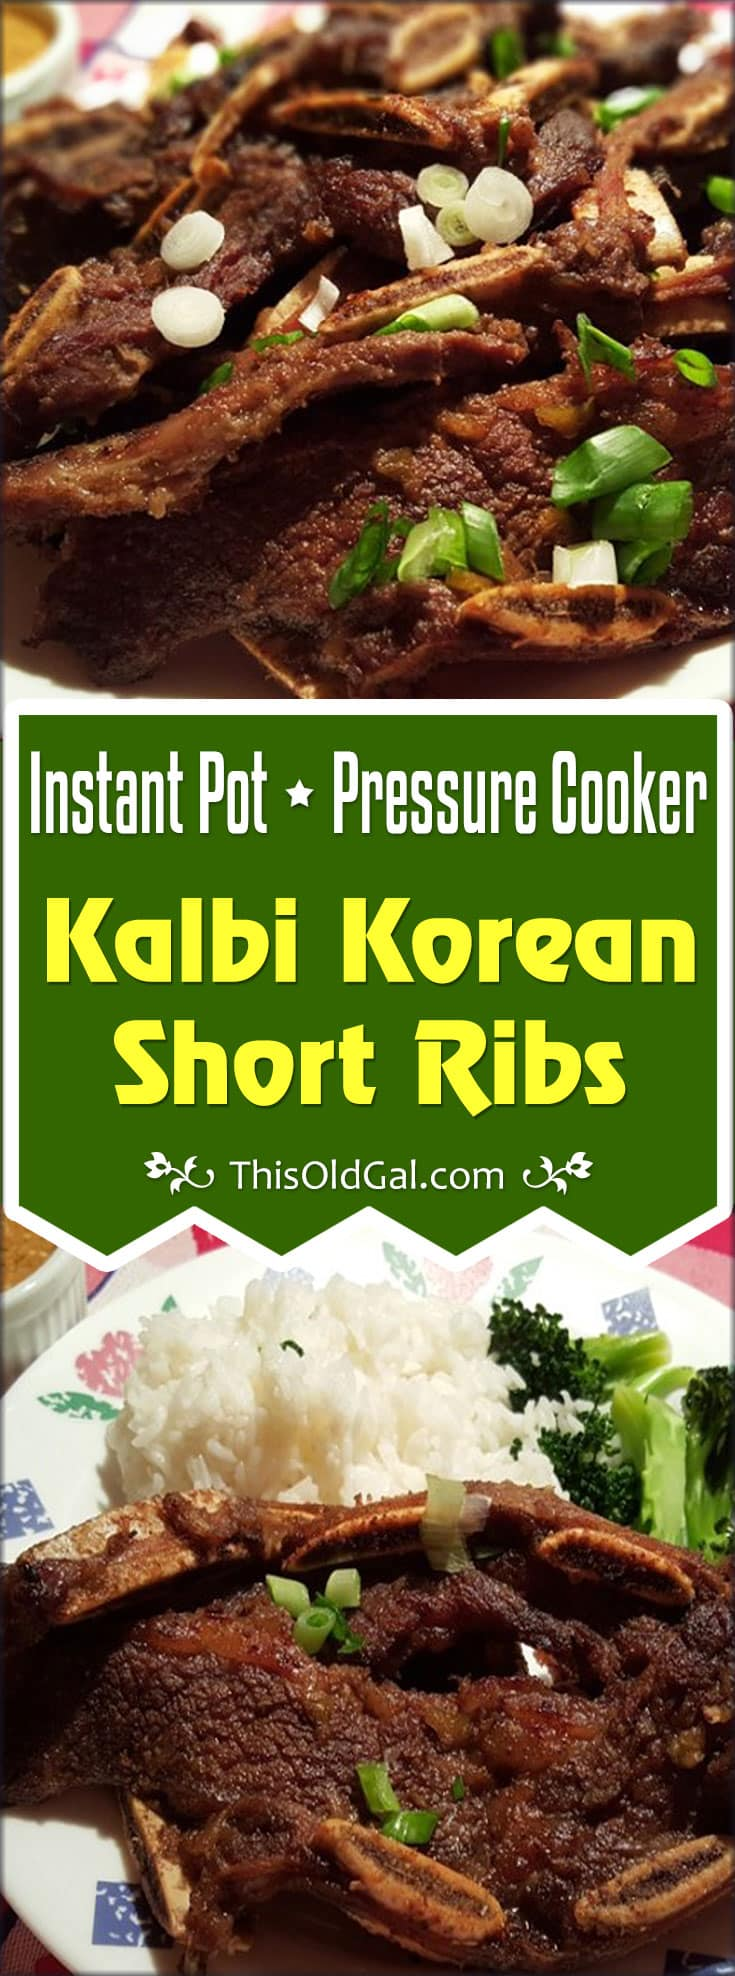 Instant Pot Pressure Cooker Kalbi Korean Short Ribs